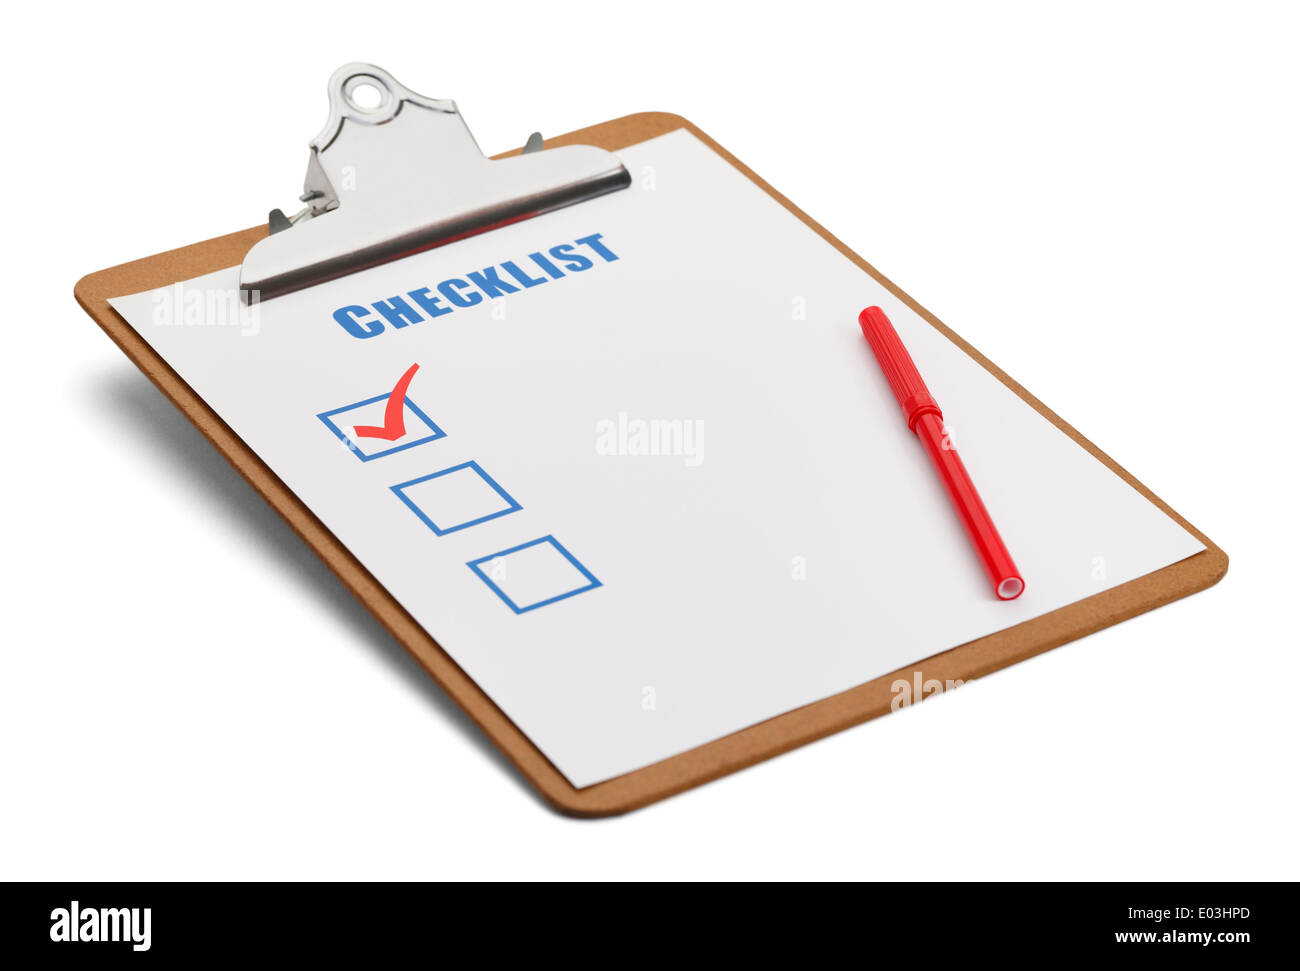 Classic Clipboard with Checklist and Red Pen Isolated on White Background. - Stock Image